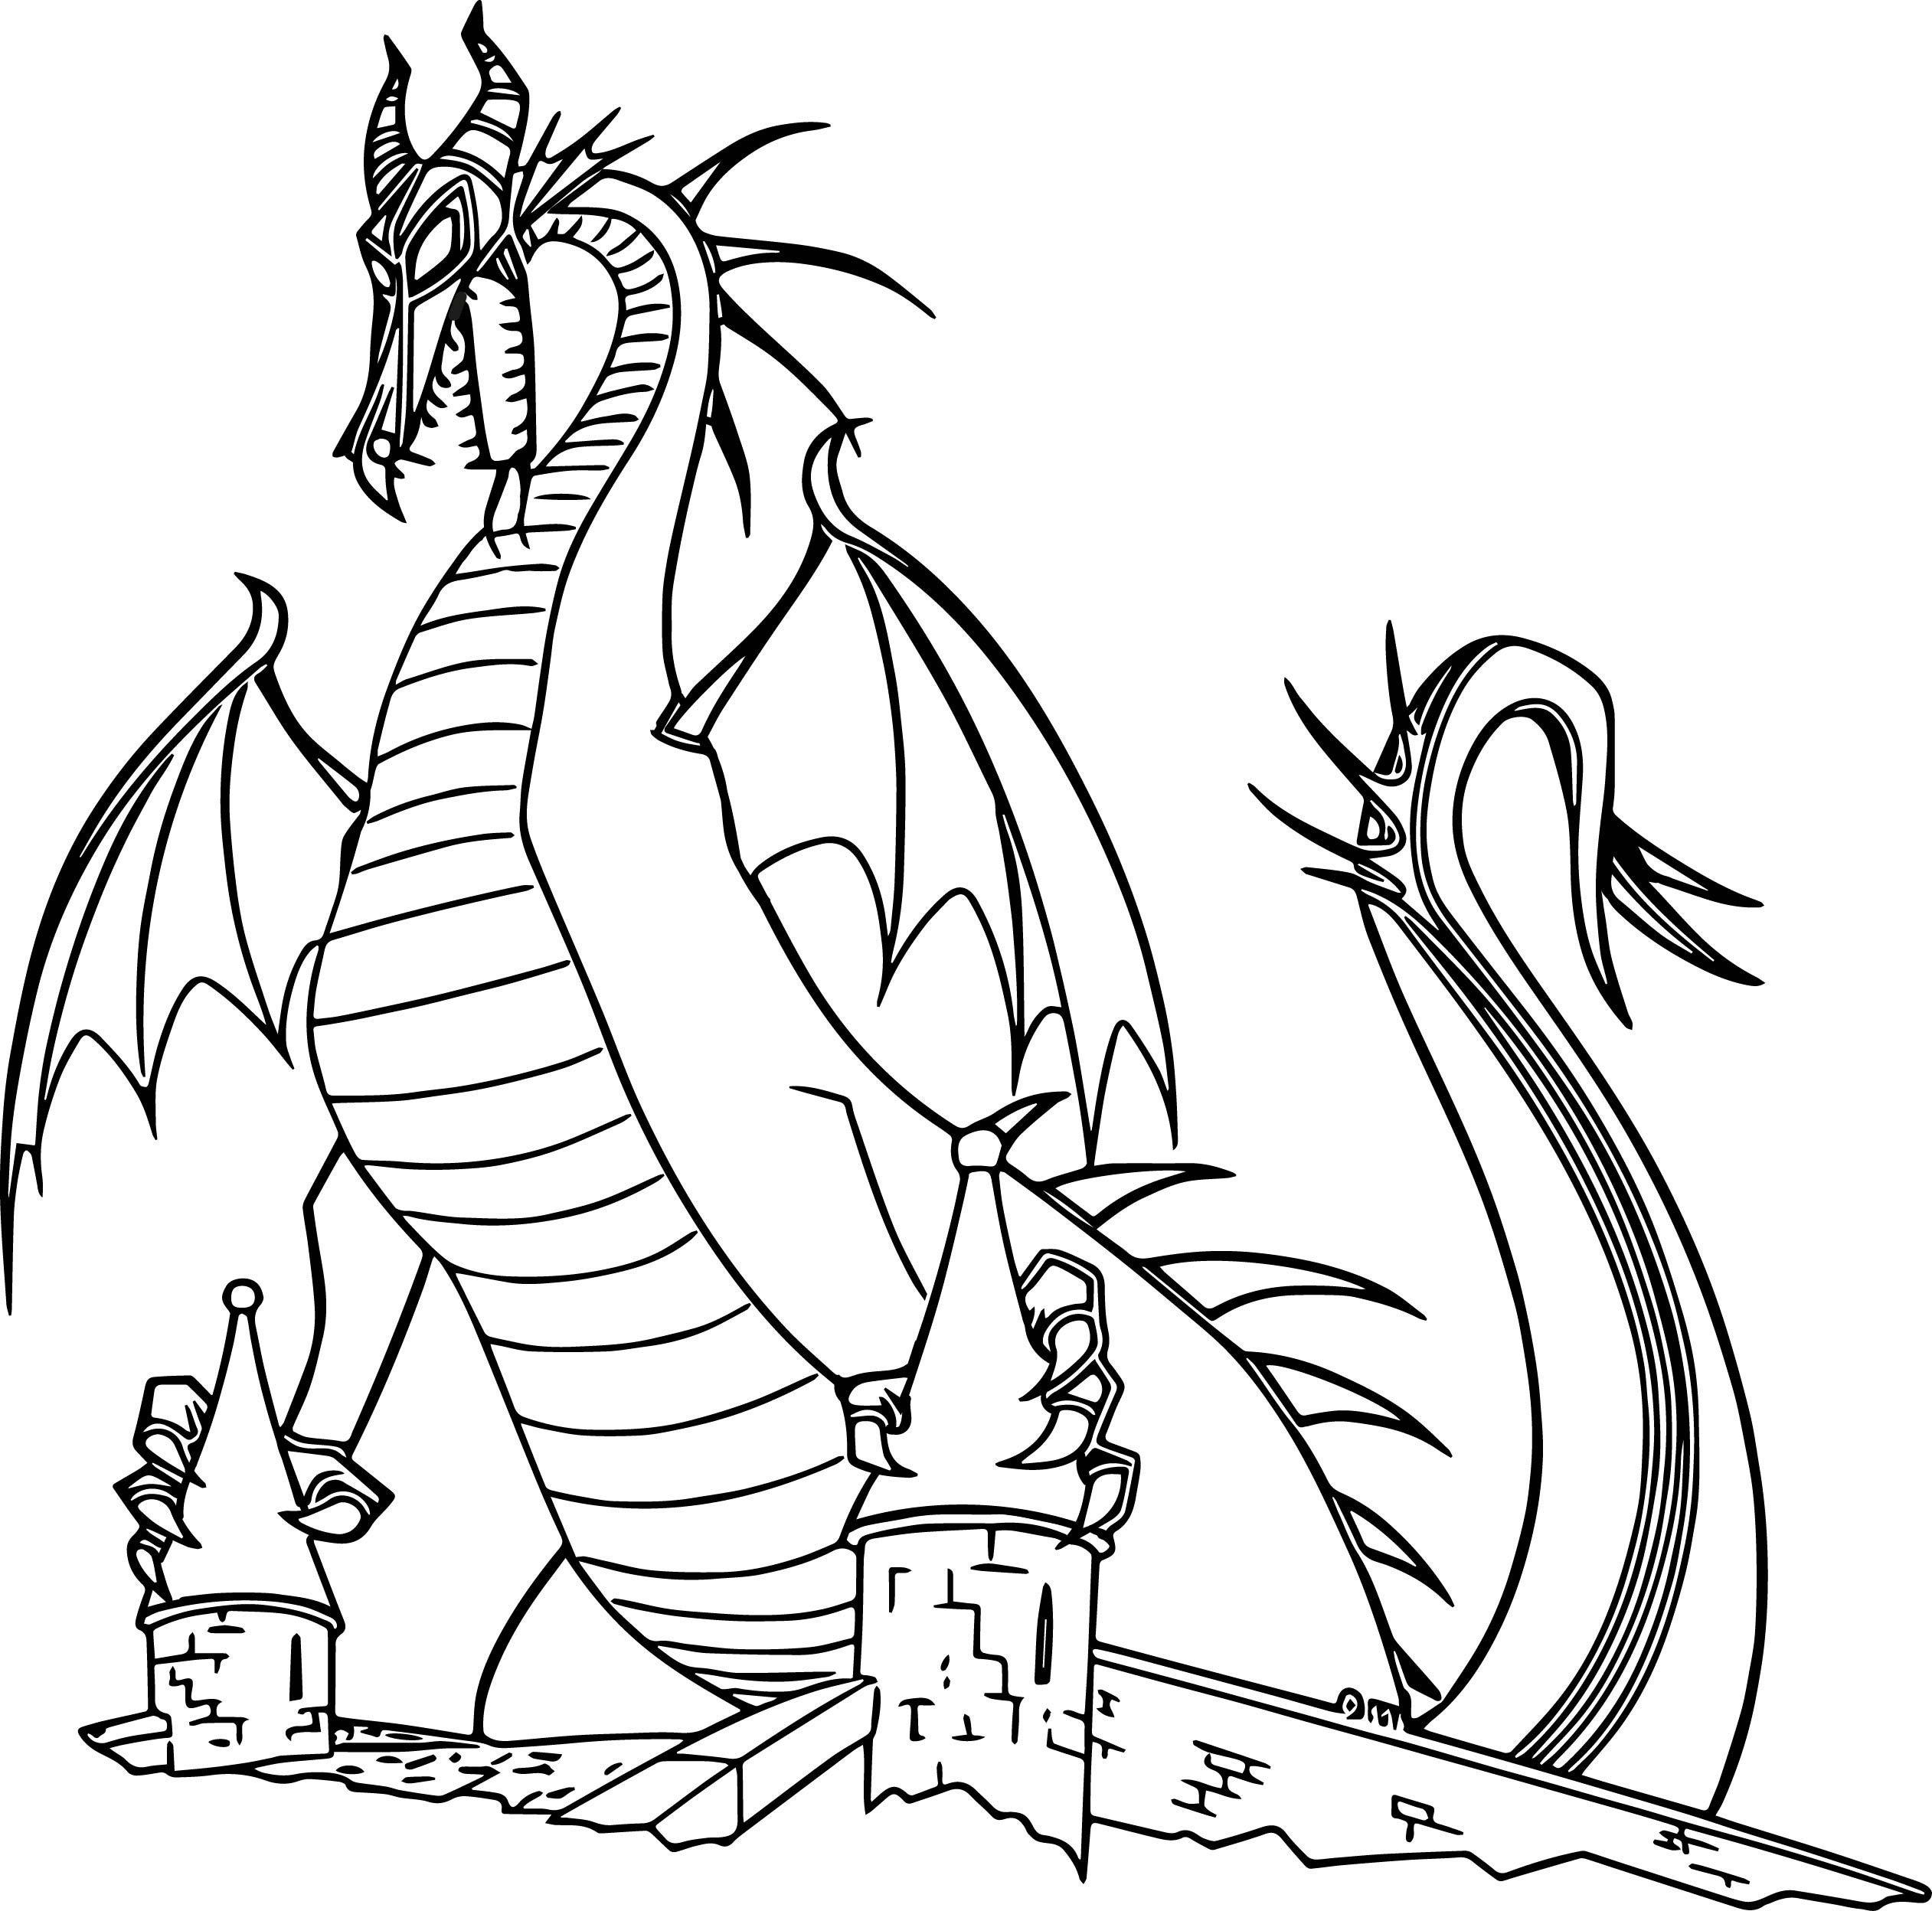 Maleficent Coloring Pages  Maleficent Dragon Castle Cartoon Coloring Page